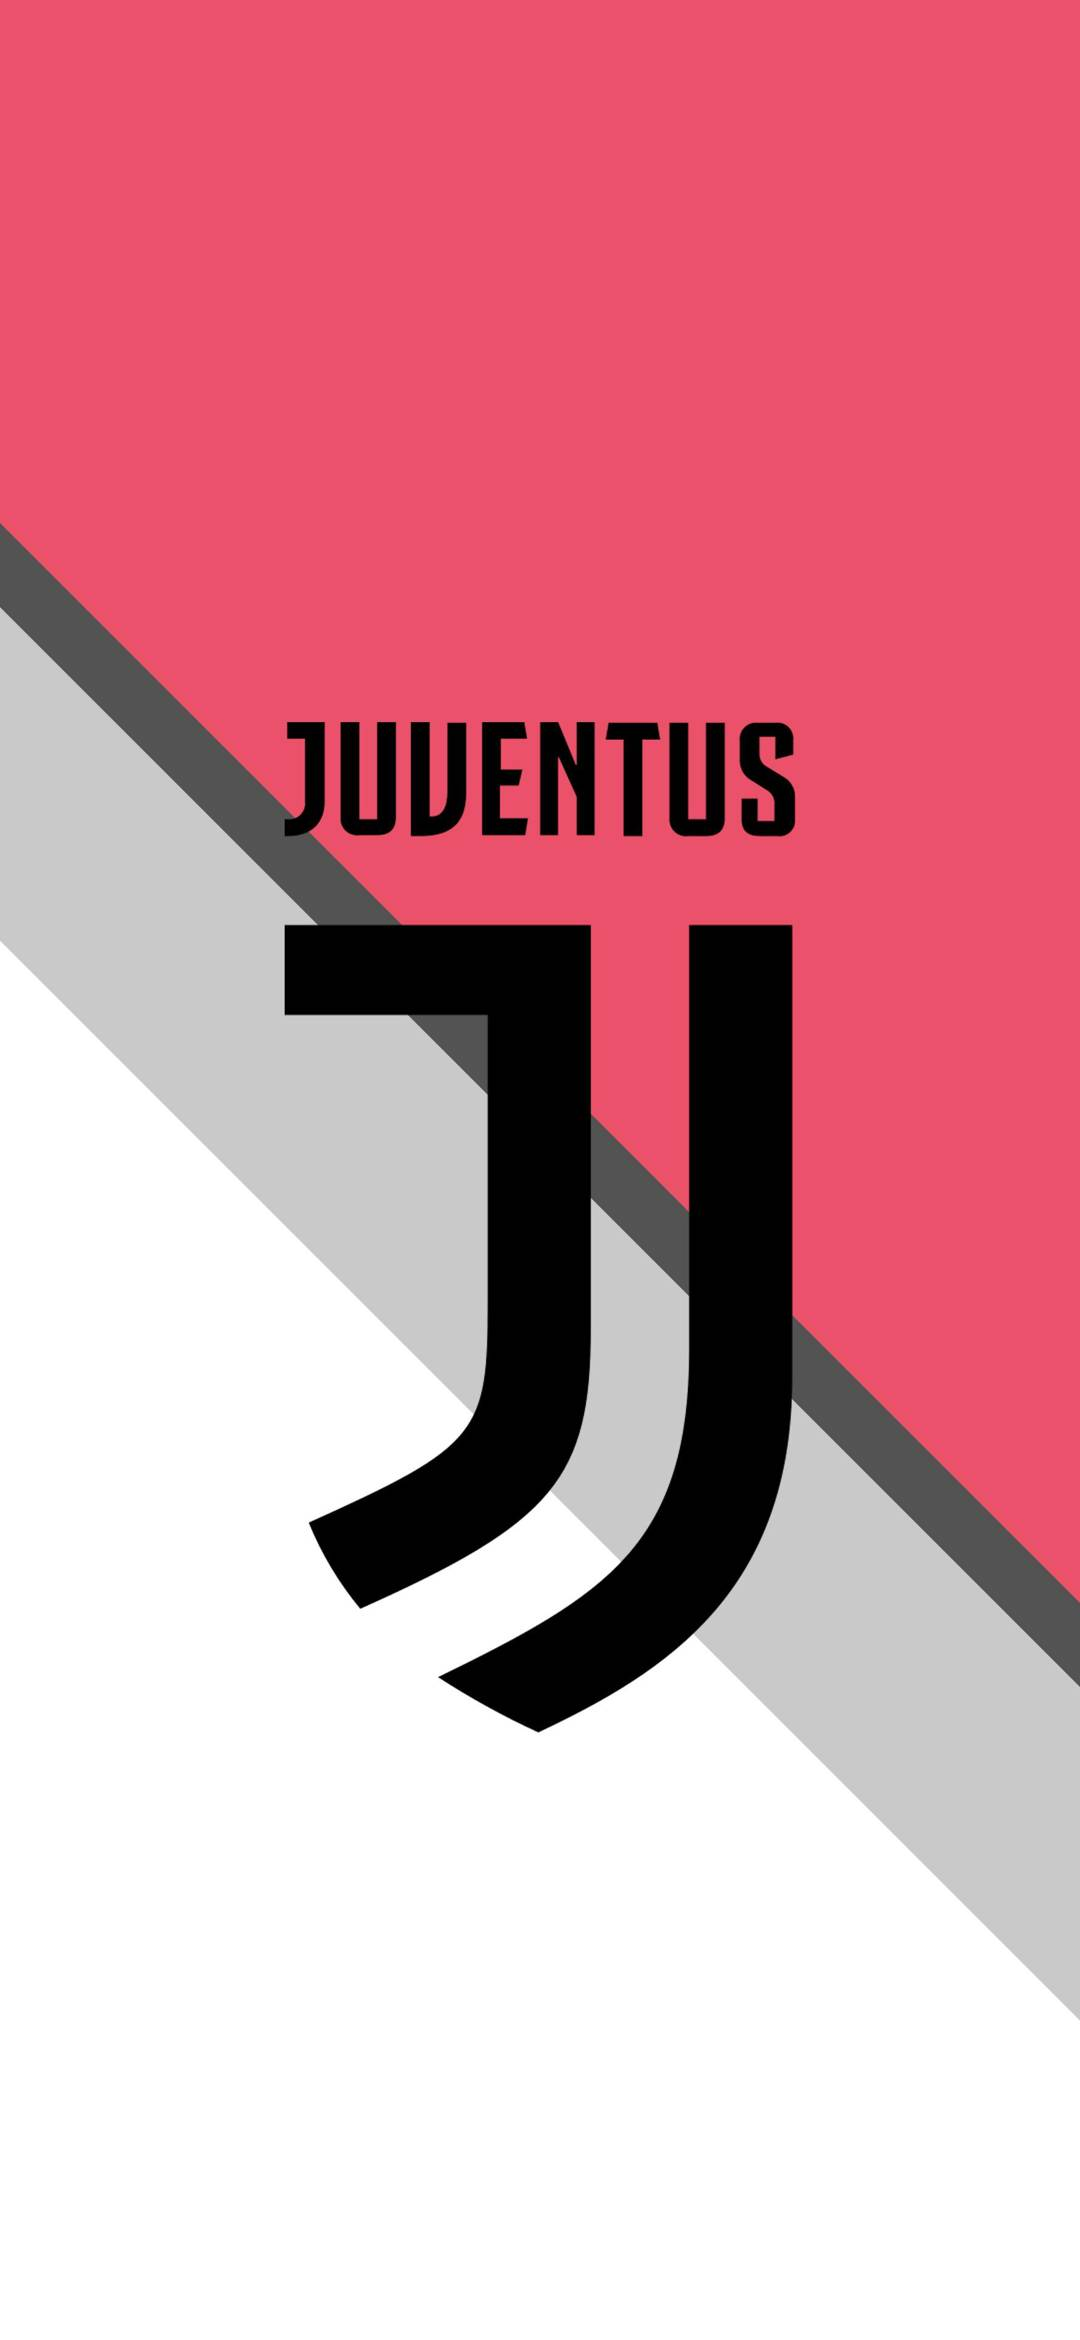 Juventus Wallpapers HD For iPhone and Android